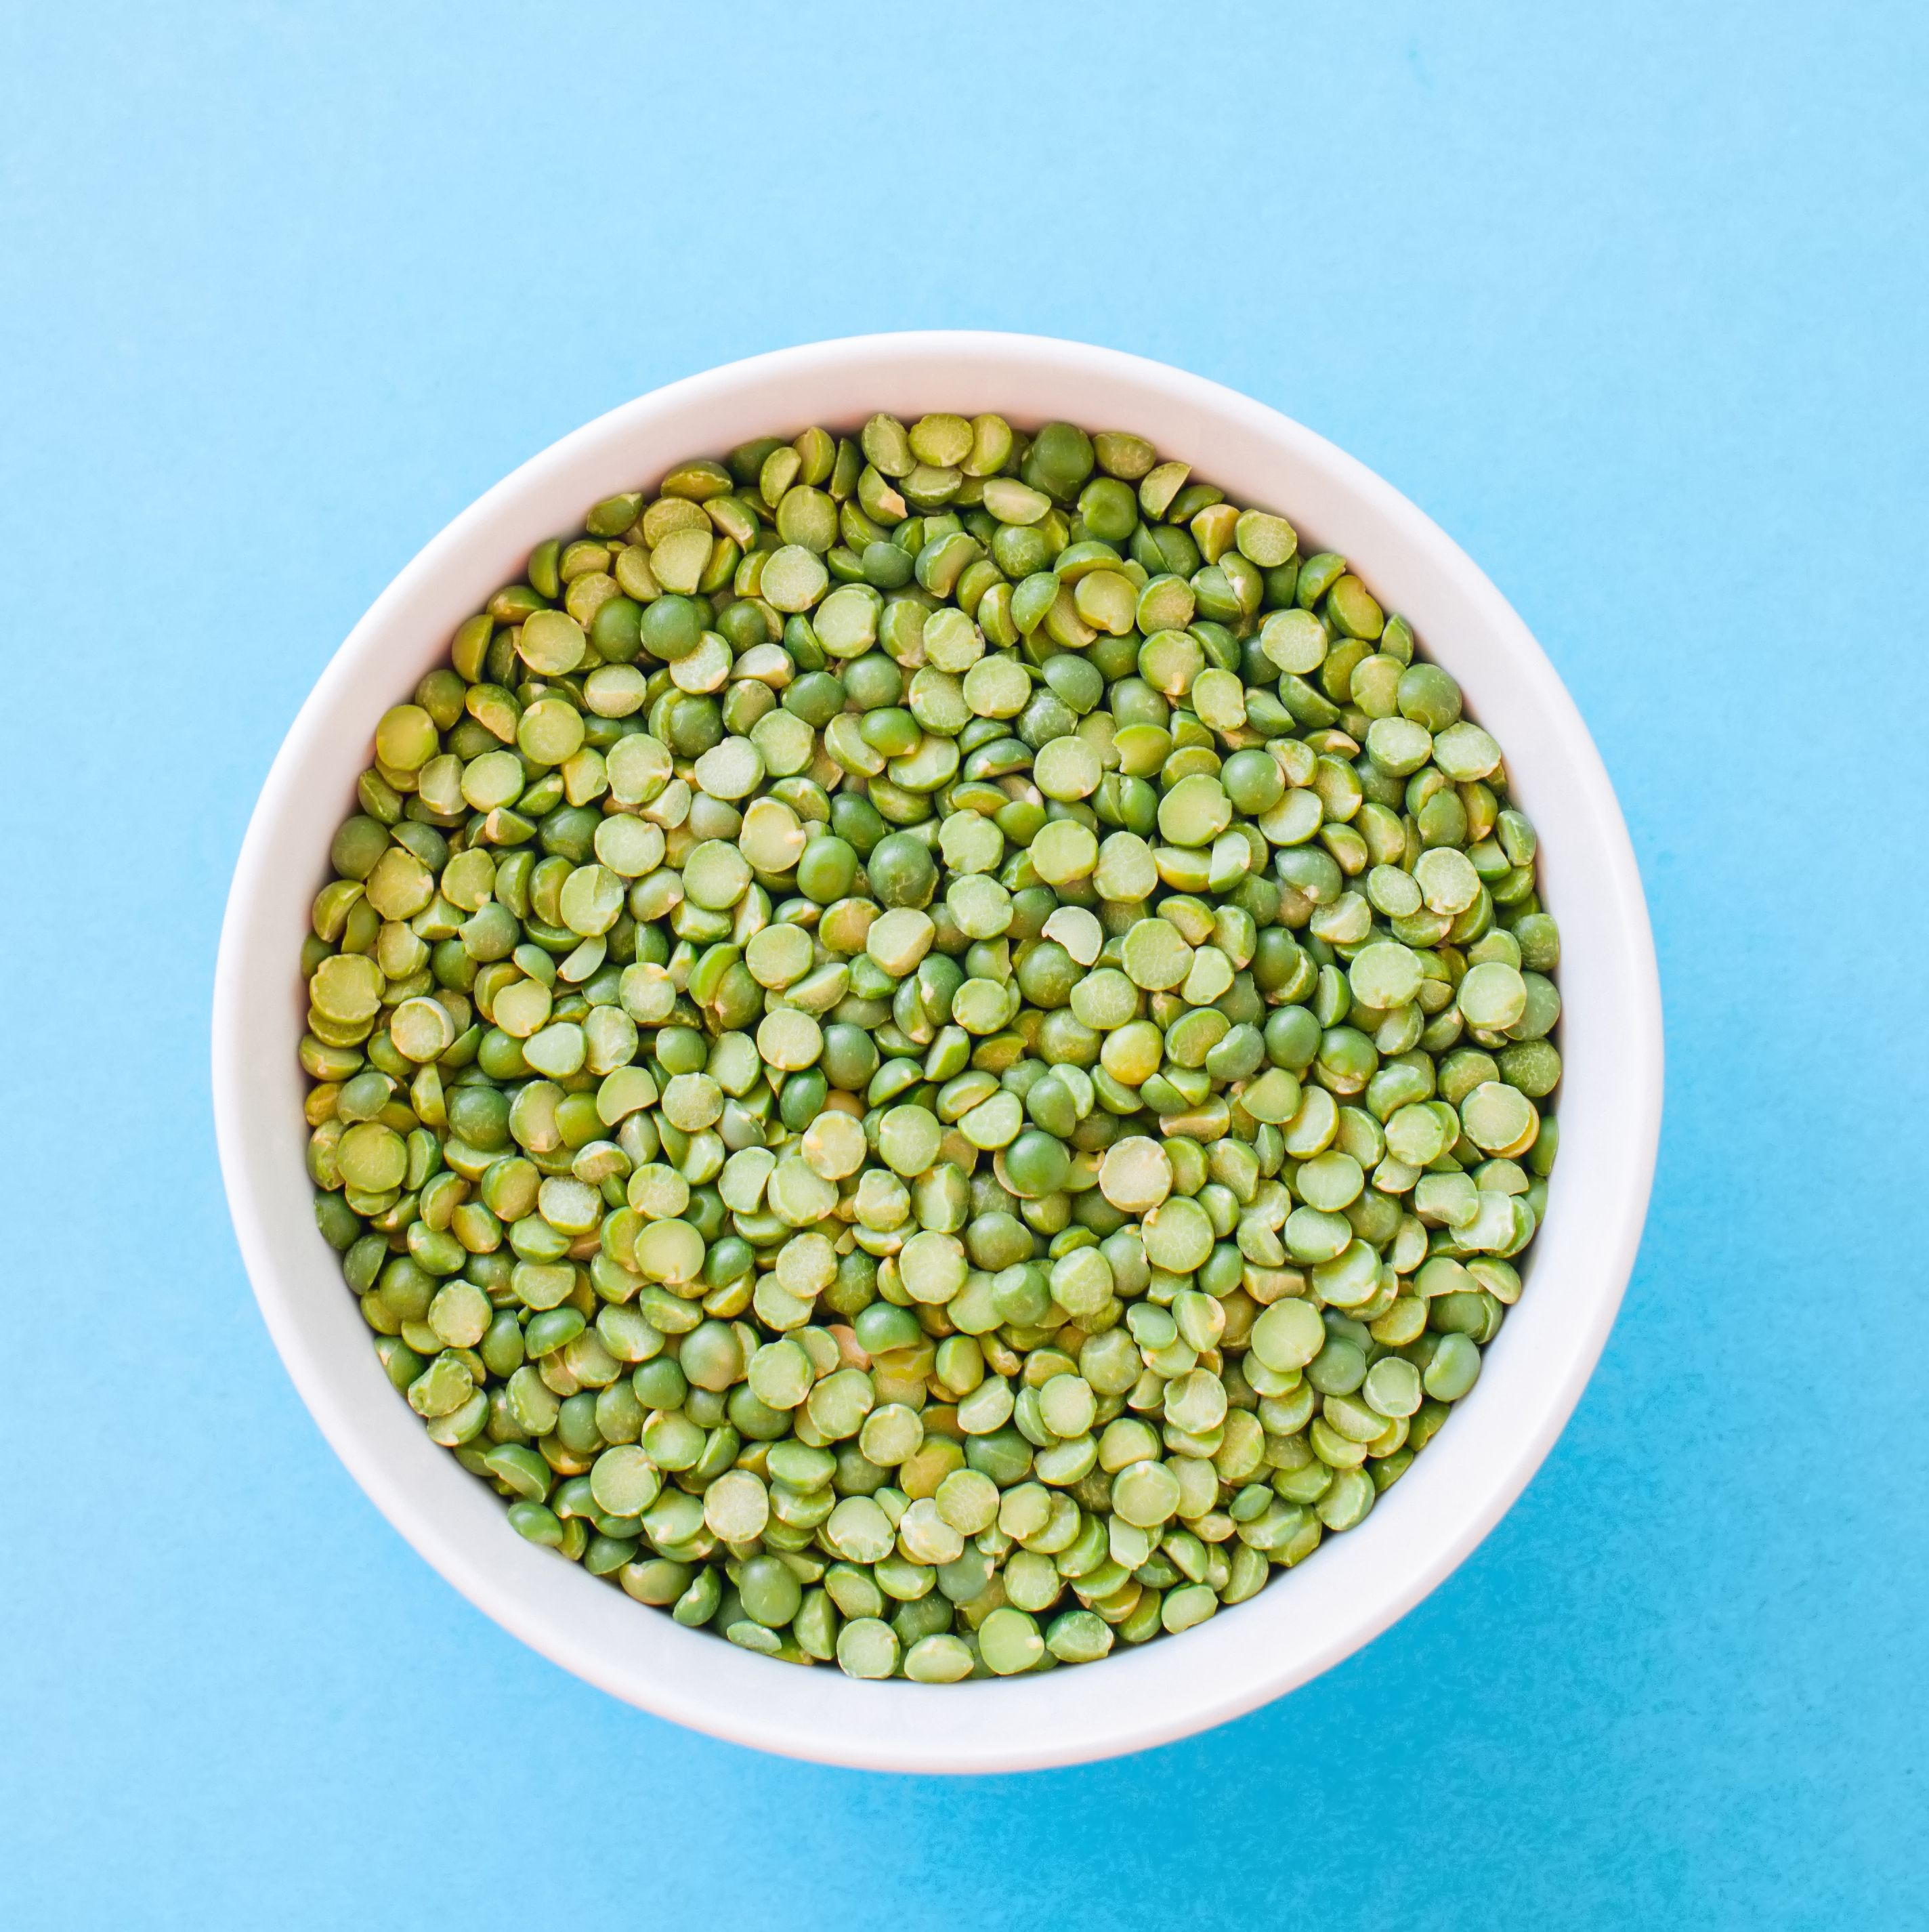 Raw uncooked green peas